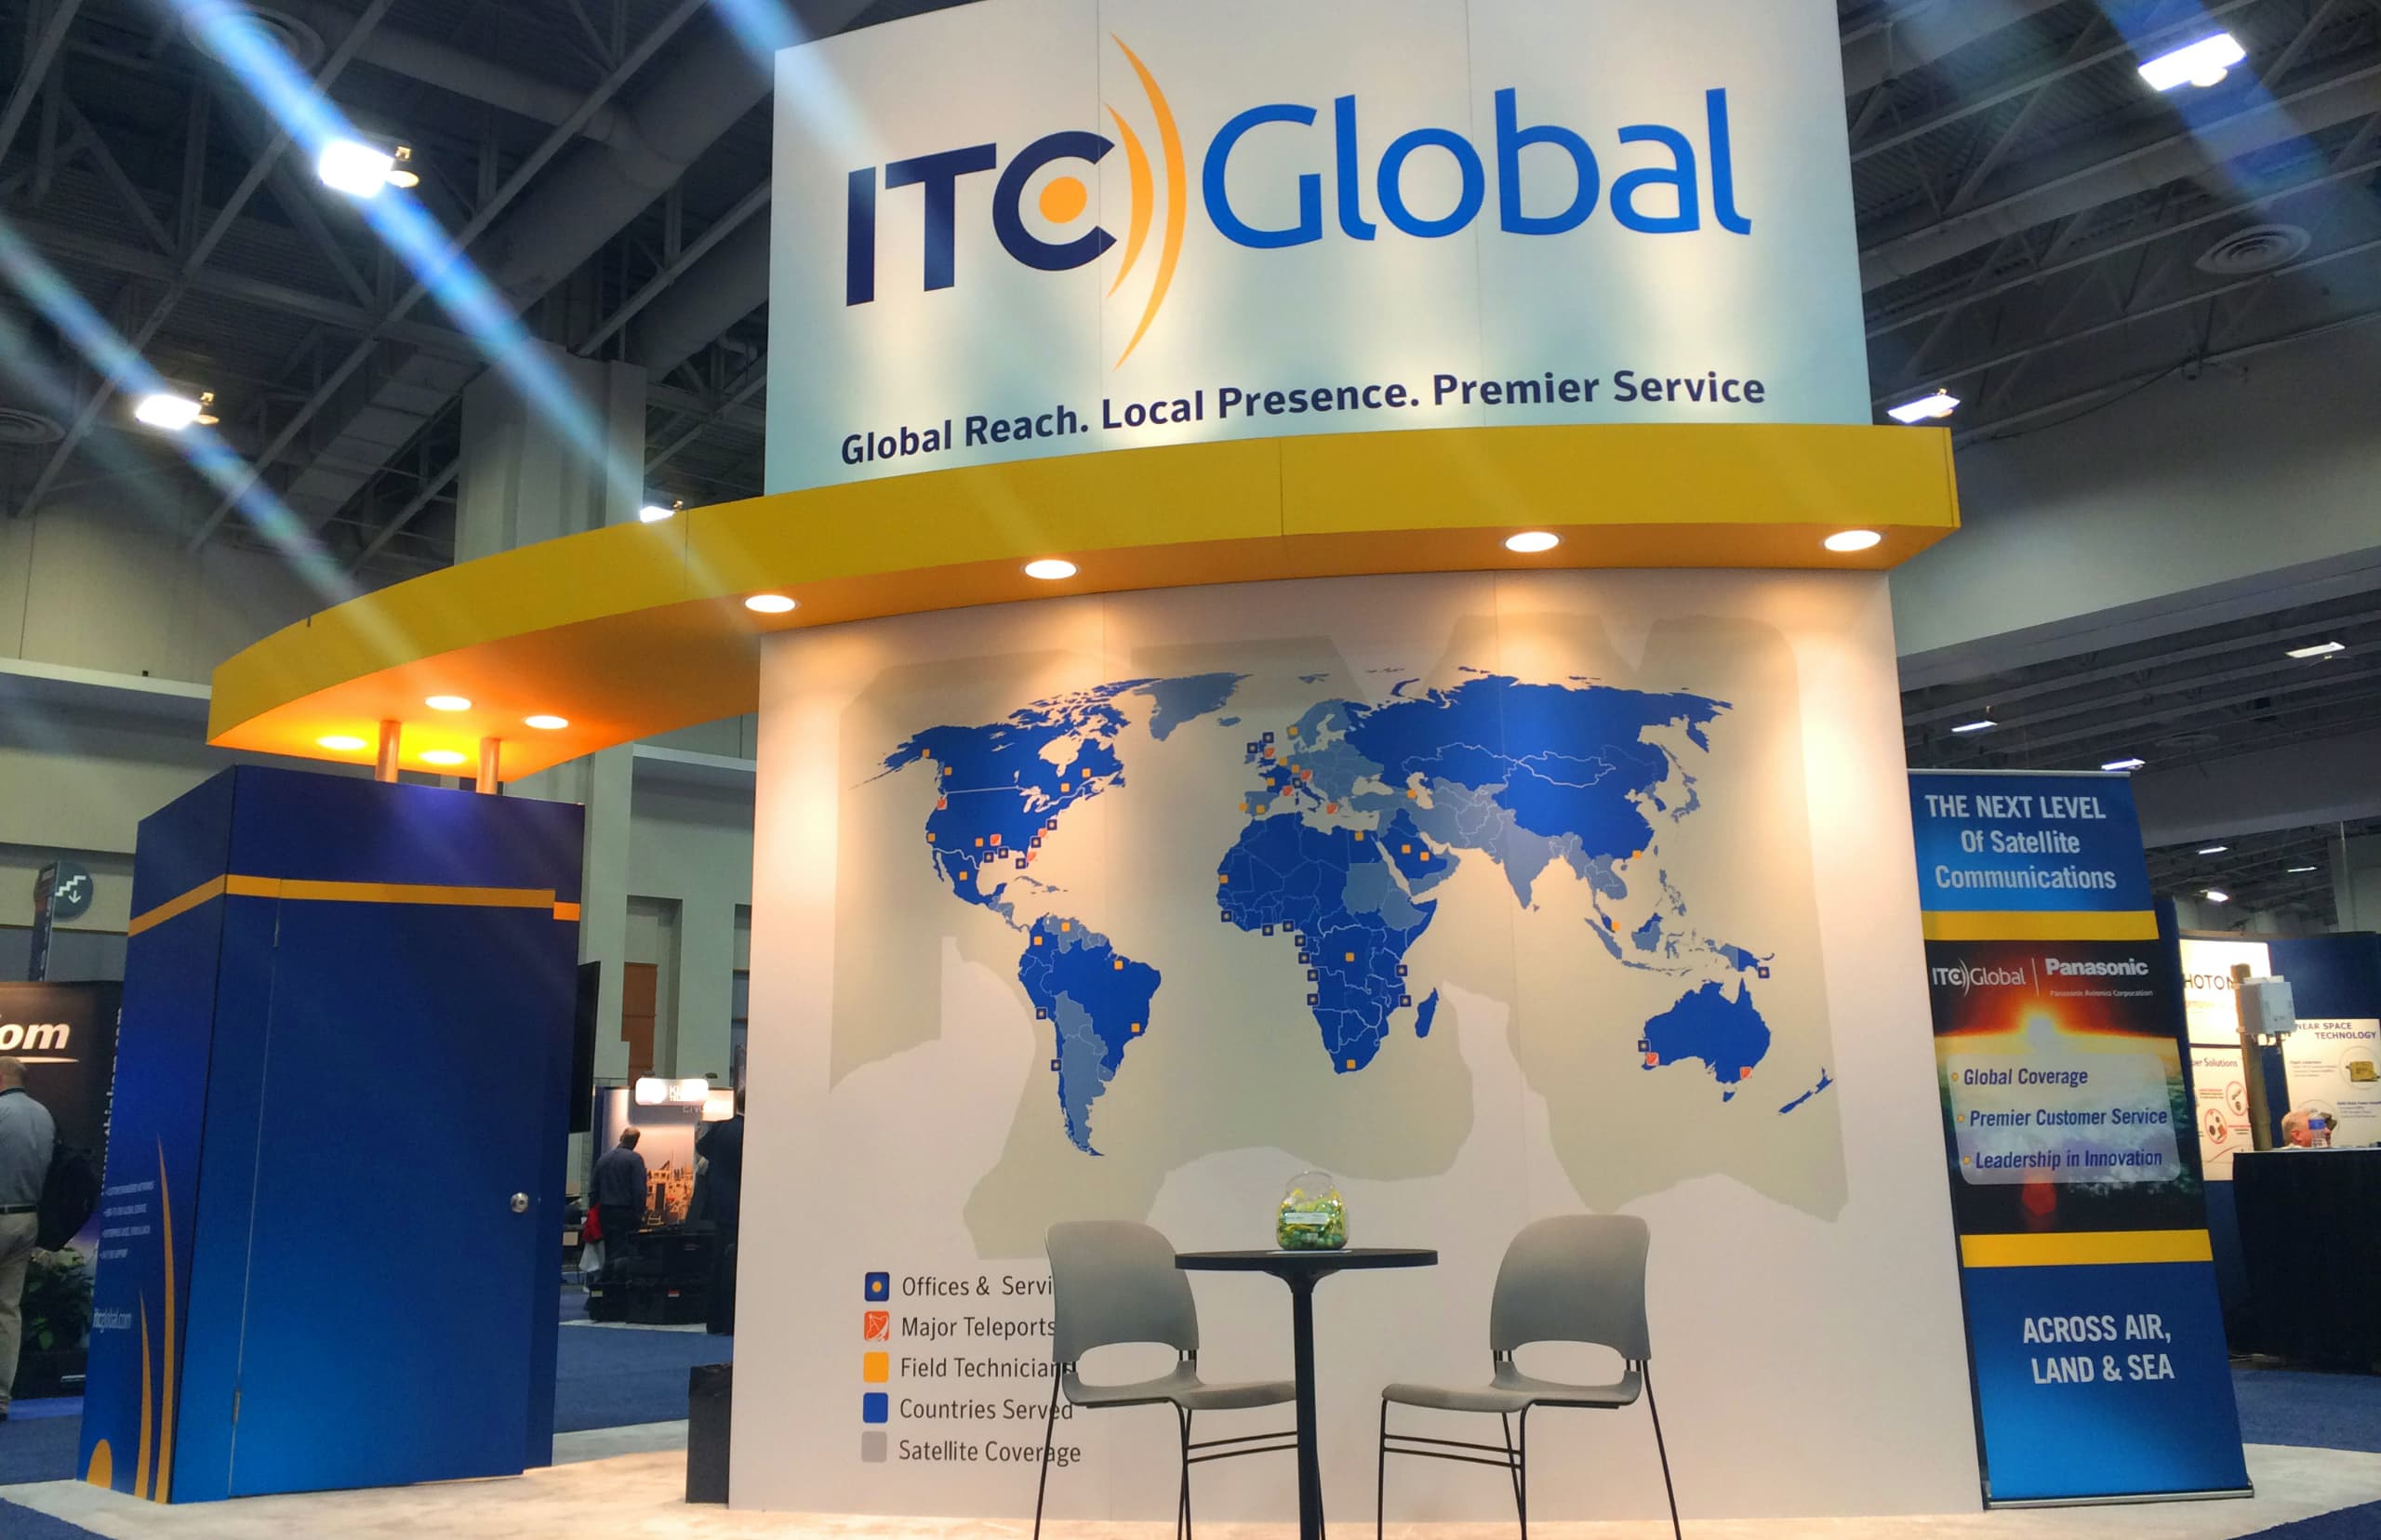 graphic exhibition itc global logo 3d